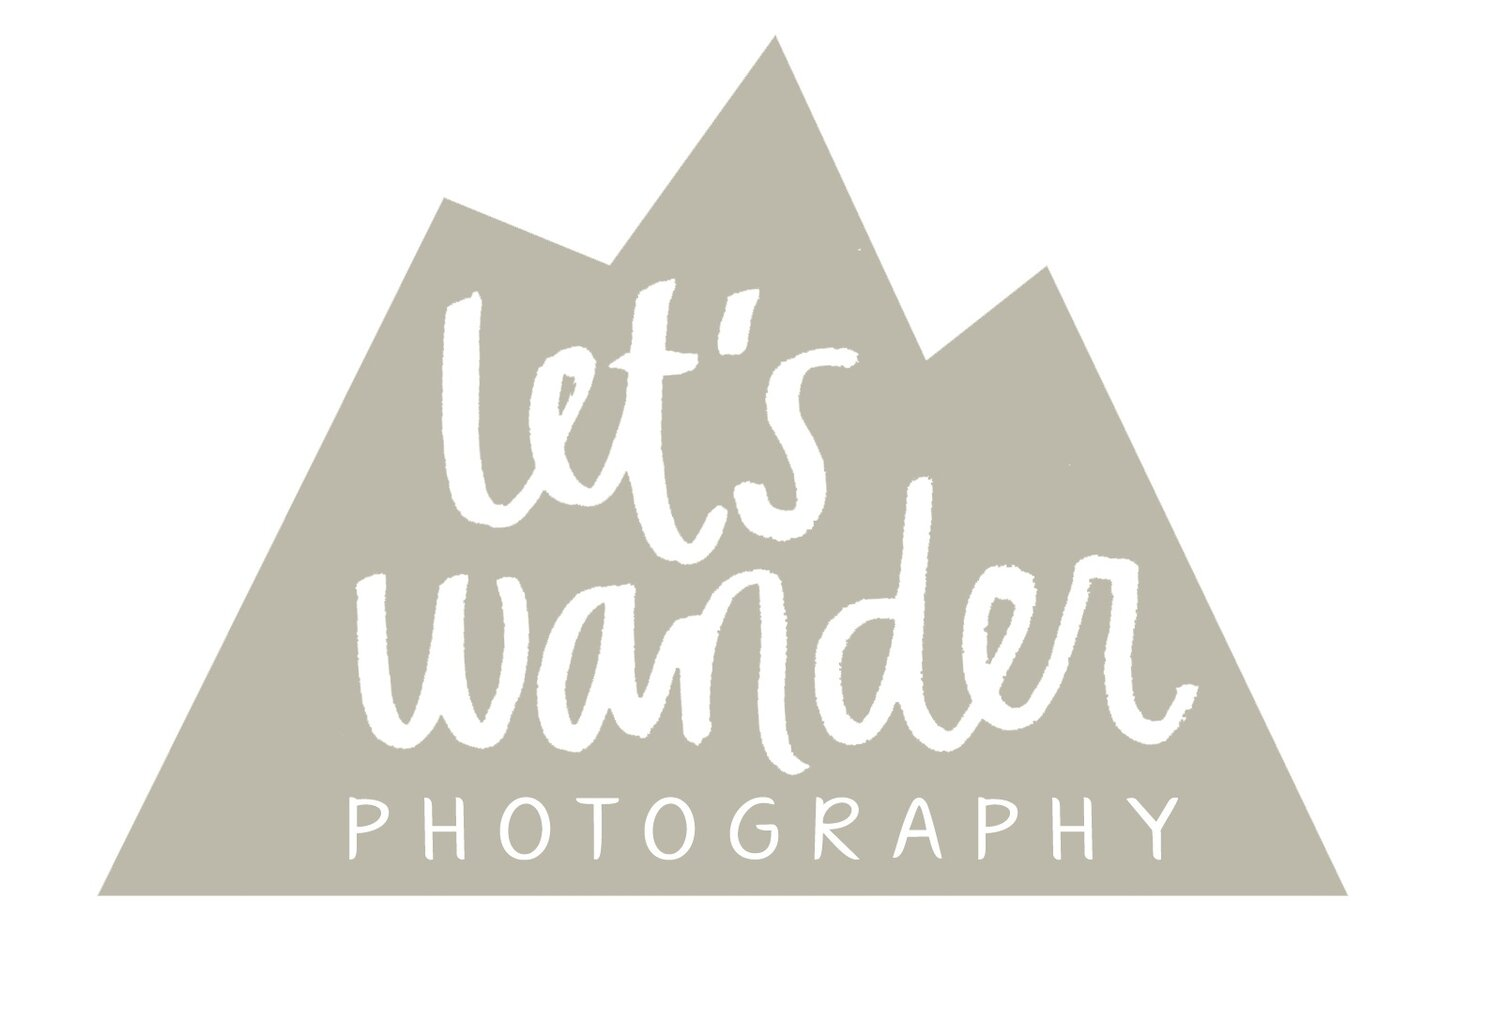 Let's Wander Photography